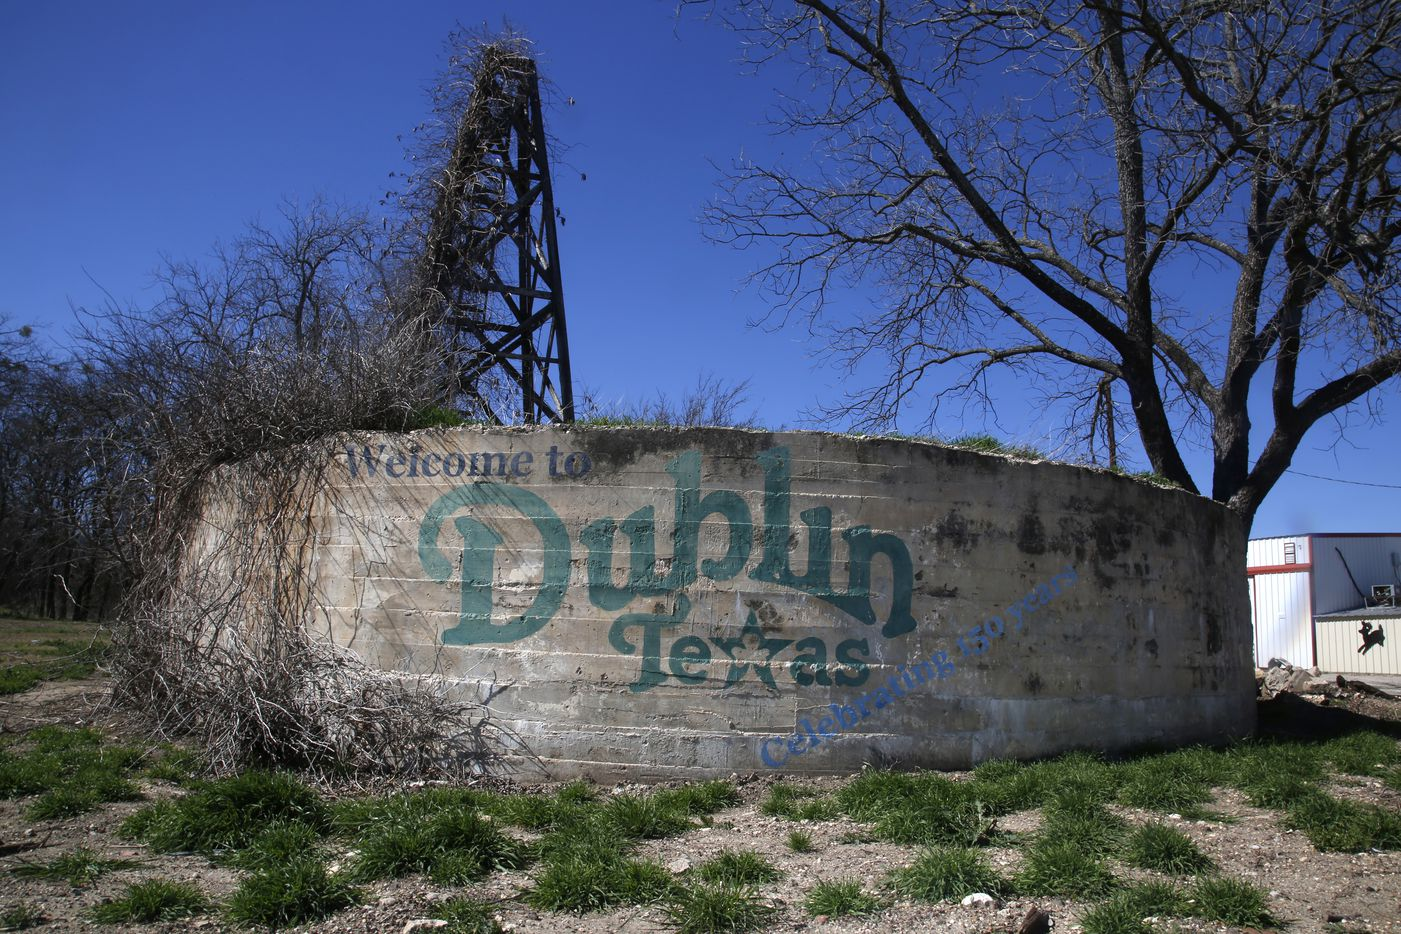 Five years after Dr Pepper left Dublin, Texas town bubbles